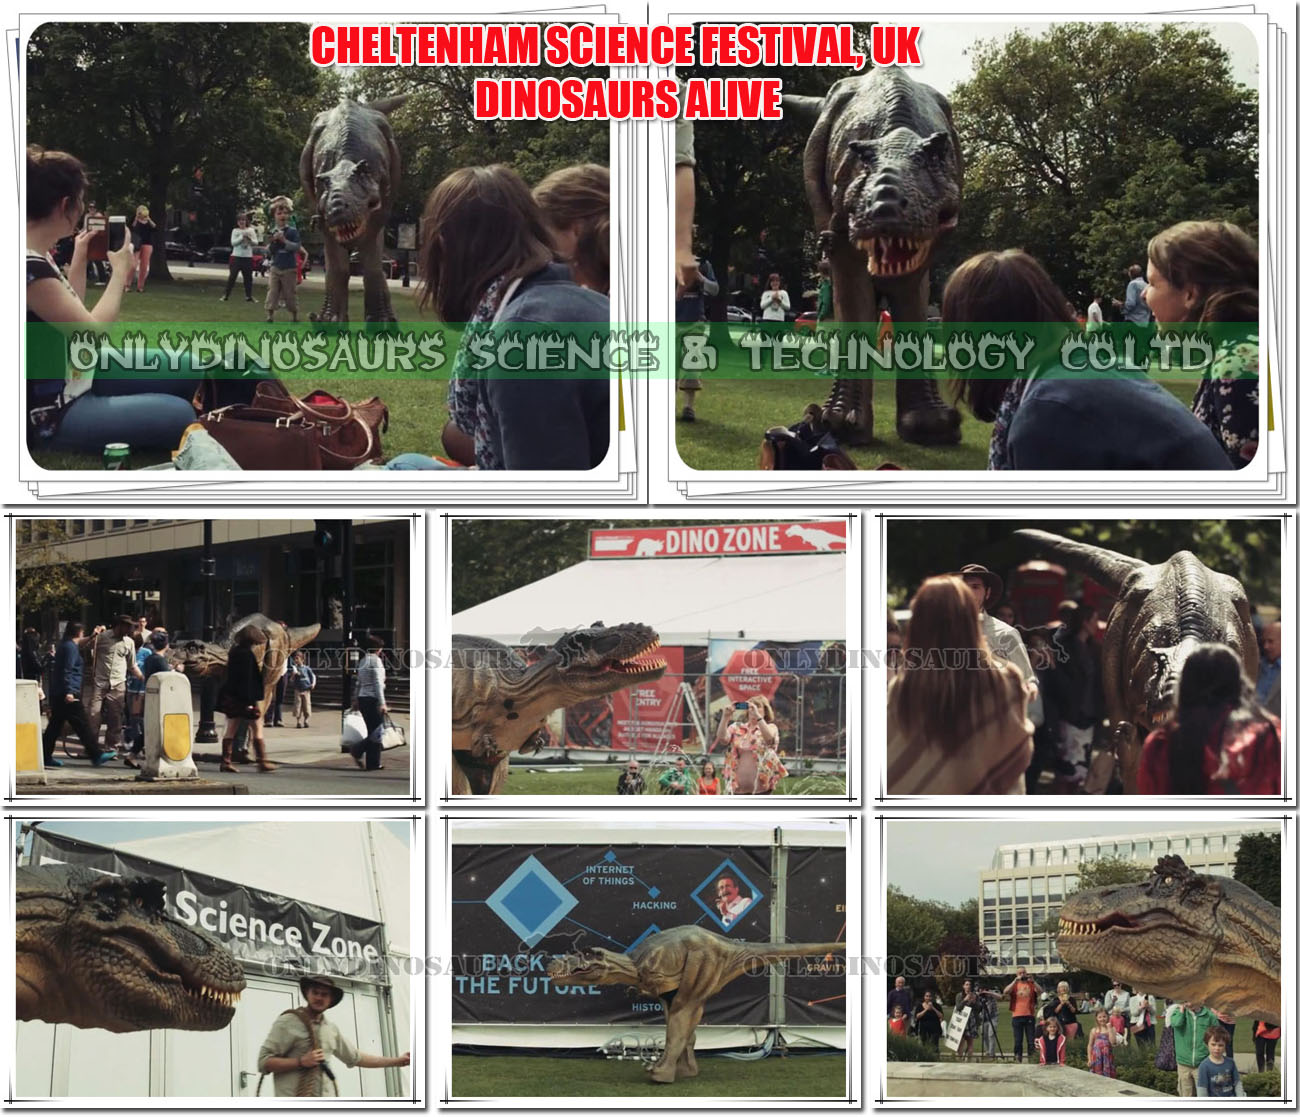 Dinosaur Show in Science Festival